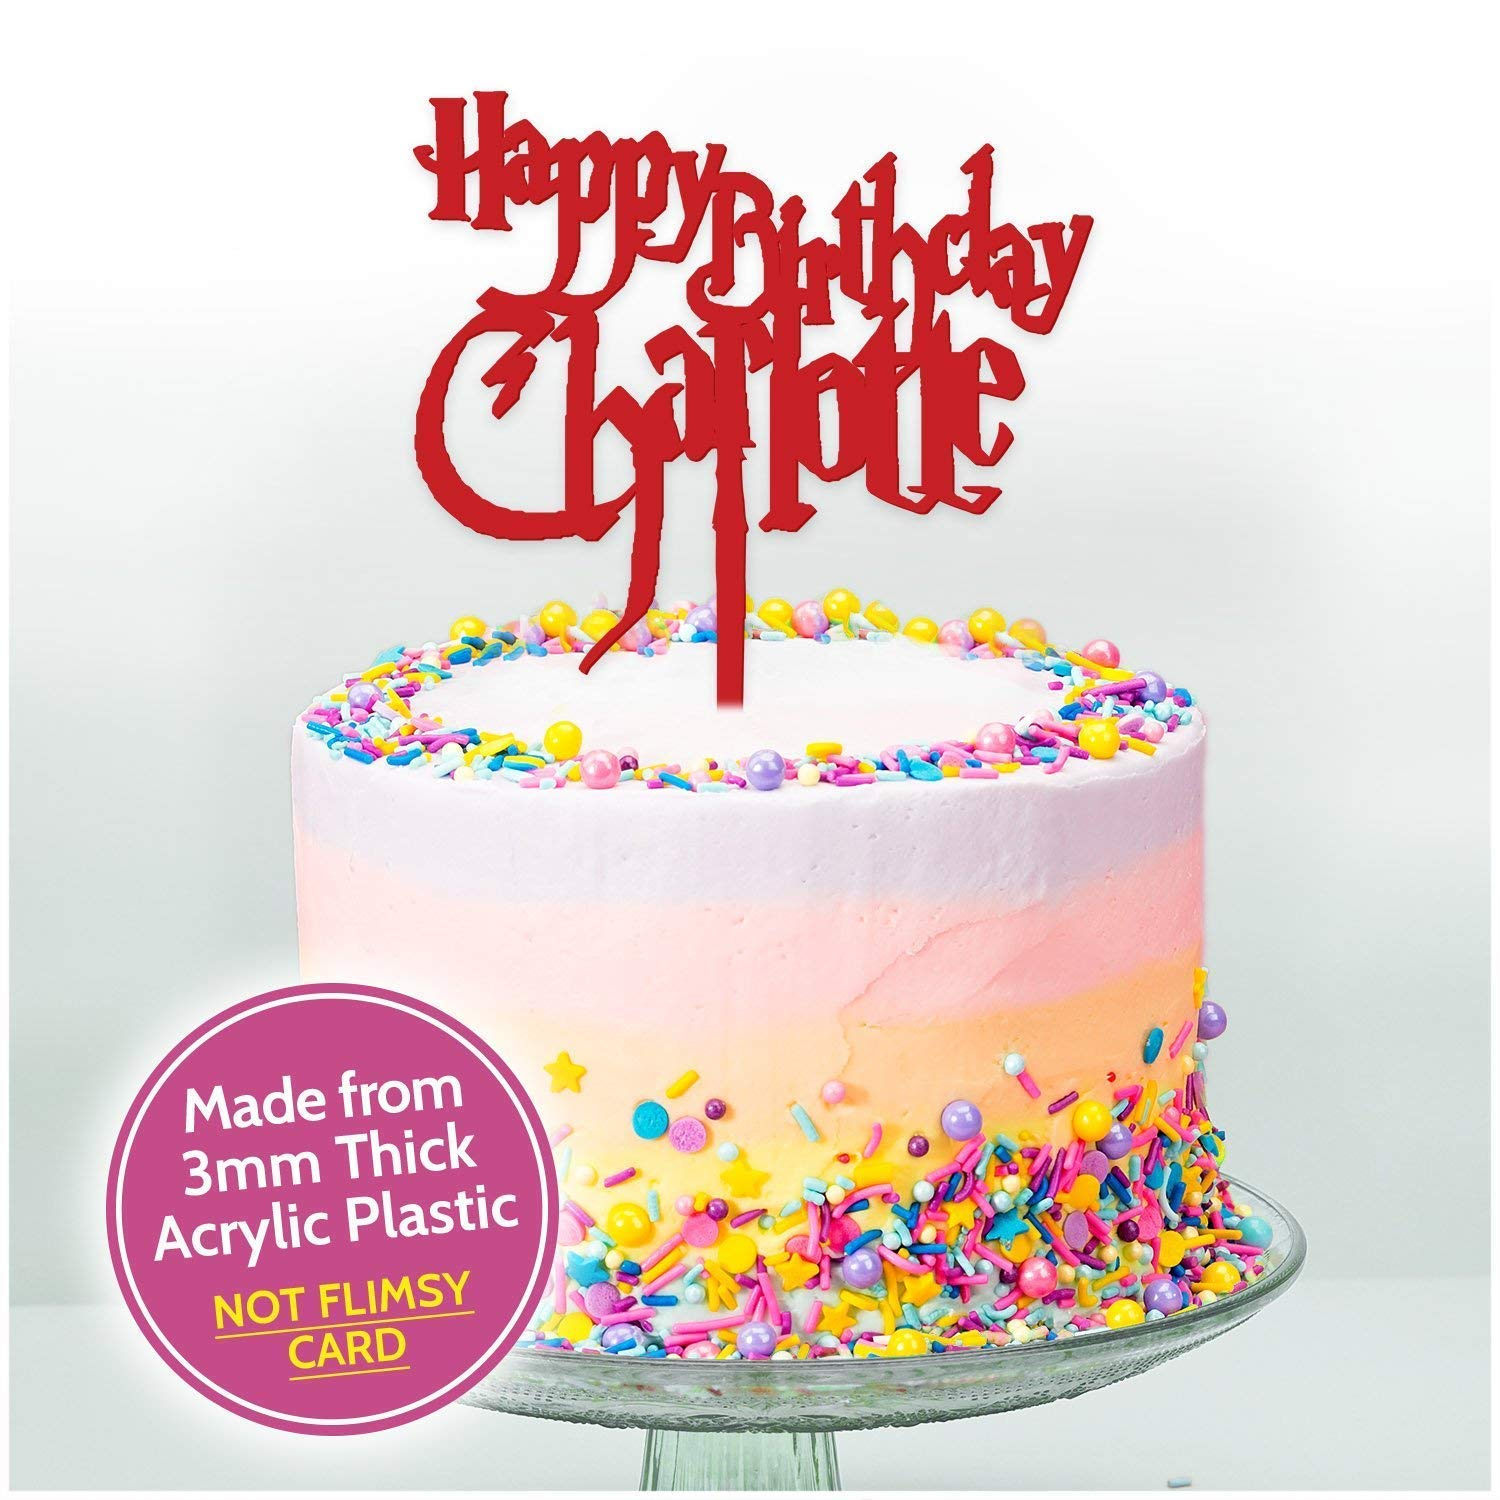 Groovy Wizard Themed Personalised Cake Topper Birthday Cake Decorations Personalised Birthday Cards Paralily Jamesorg